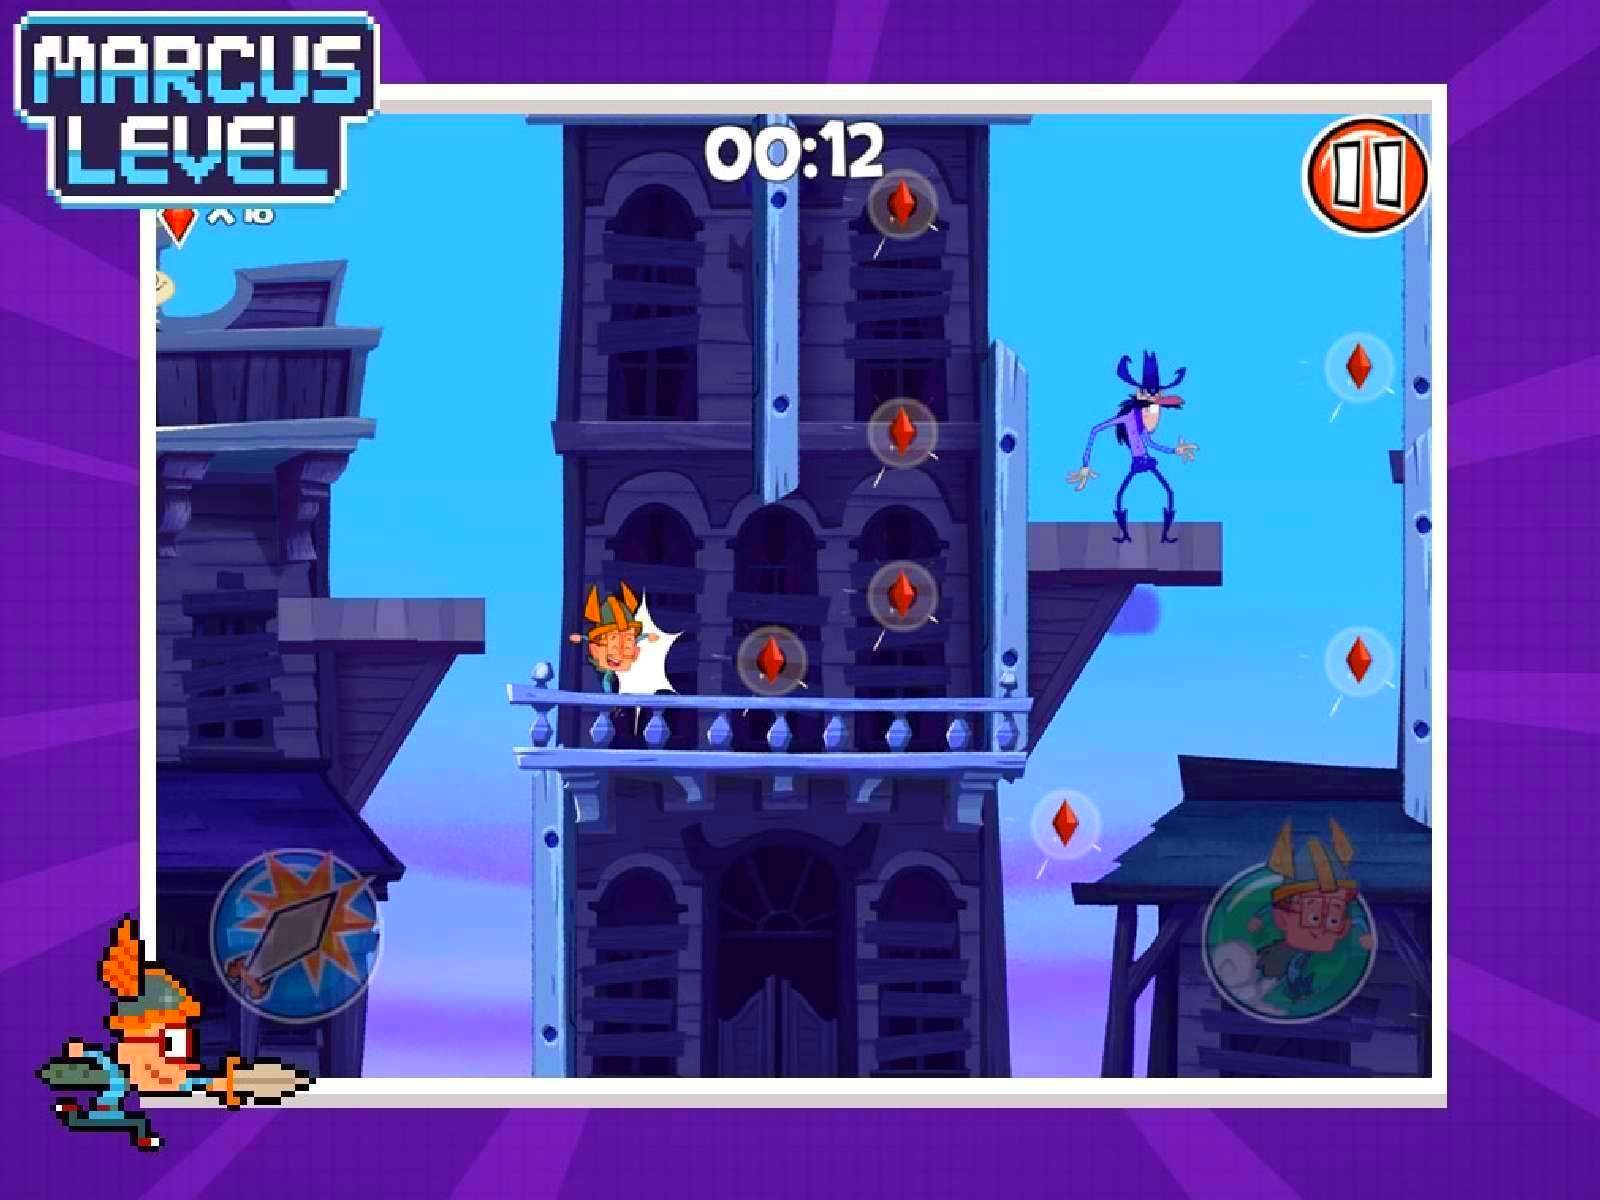 Screenshot from Marcus Level (5/5)